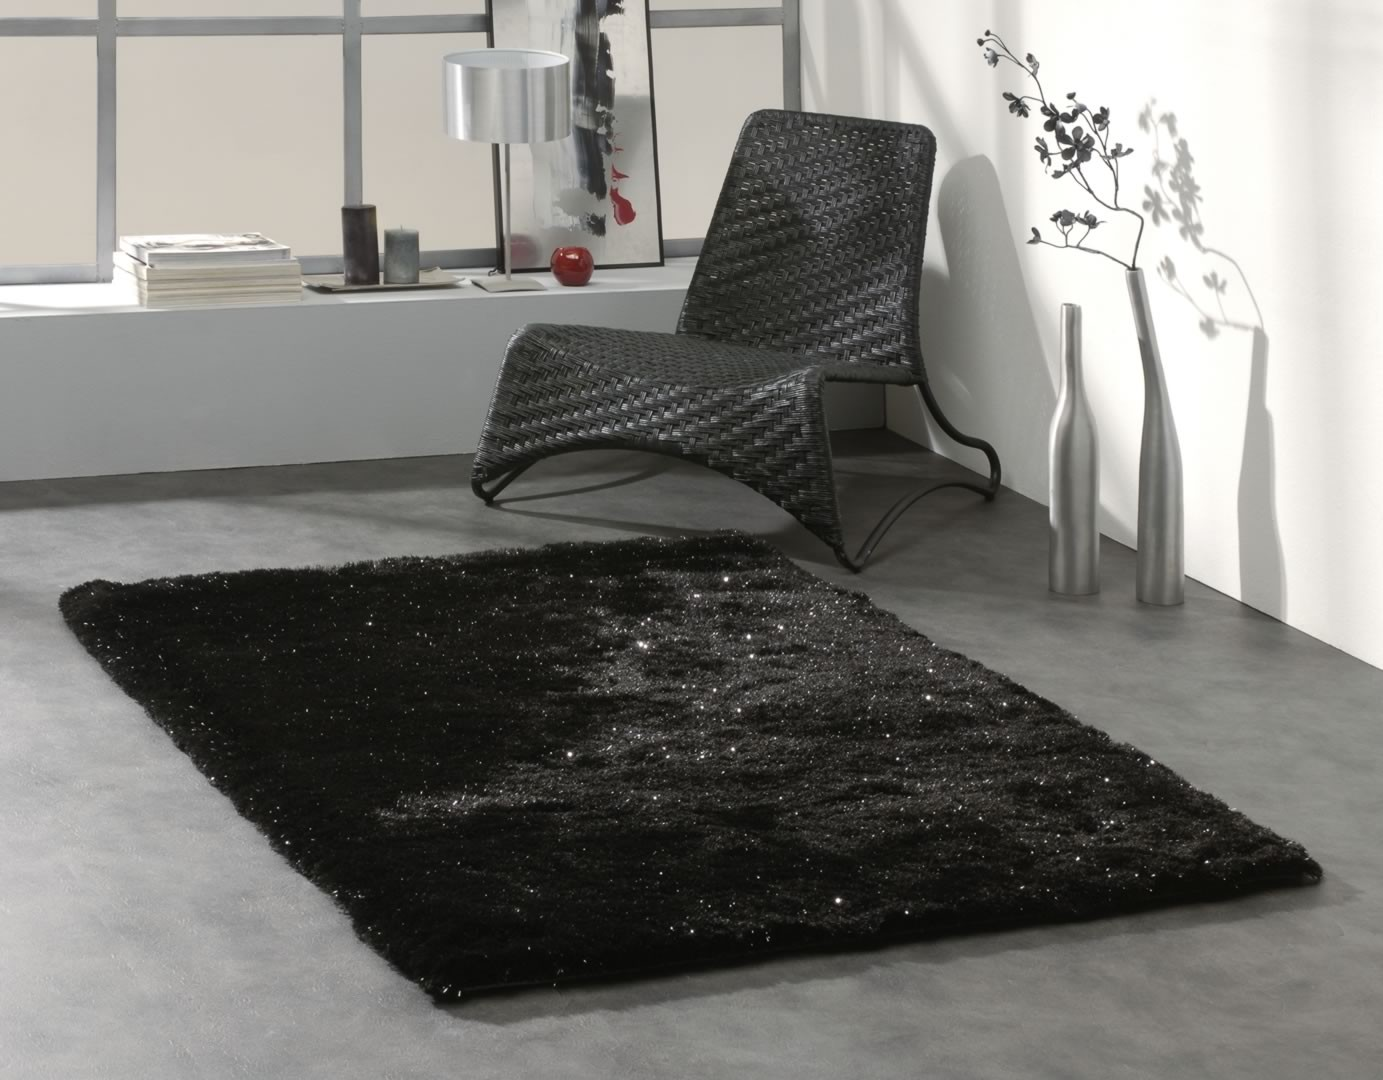 tapis shaggy prune fabulous tapis couleur prune with tapis rond prune with tapis shaggy prune. Black Bedroom Furniture Sets. Home Design Ideas